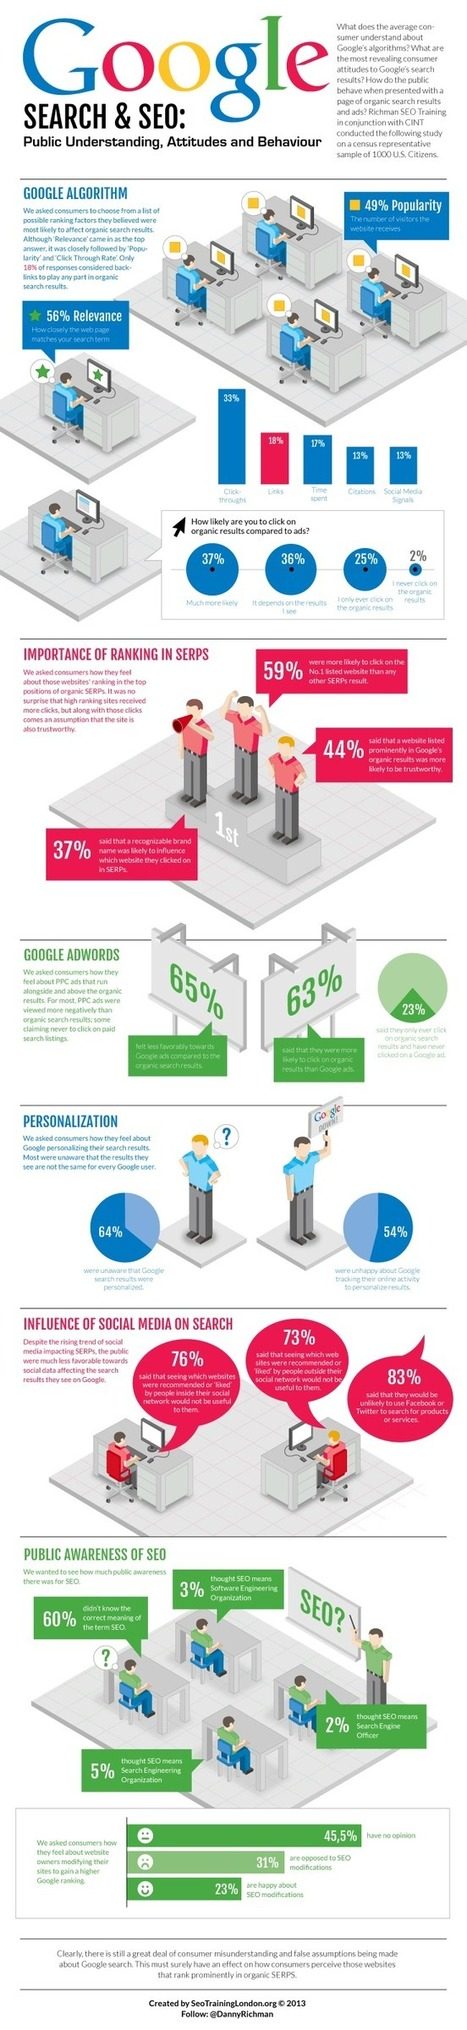 Google Search & SEO Infographic: Public Understanding Attitudes and Behaviour | Viral Classified News | Scoop.it